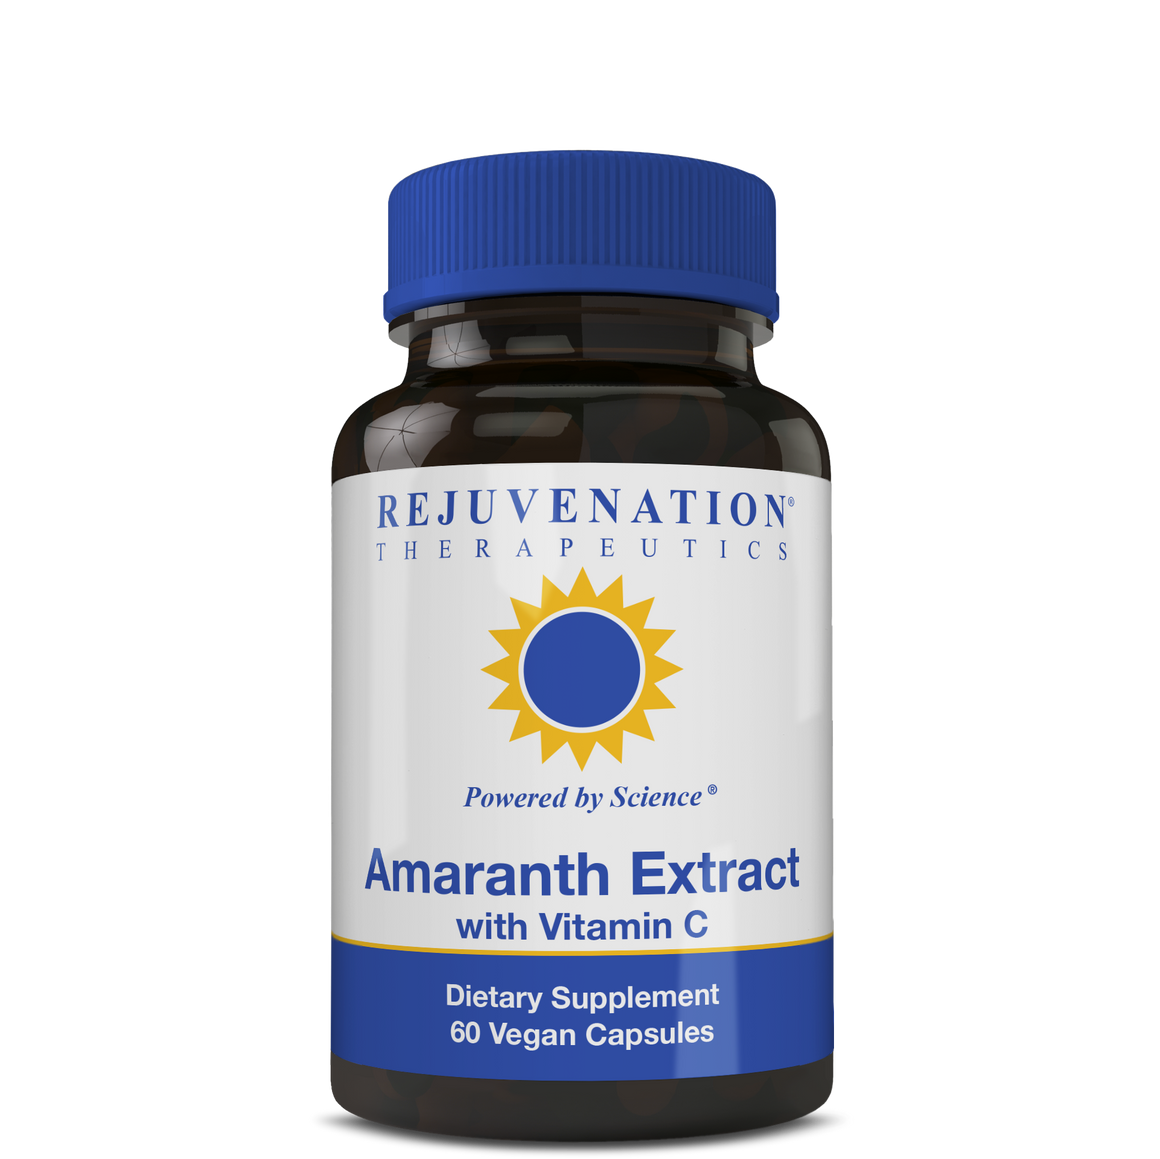 Amaranth Extract with Vitamin C